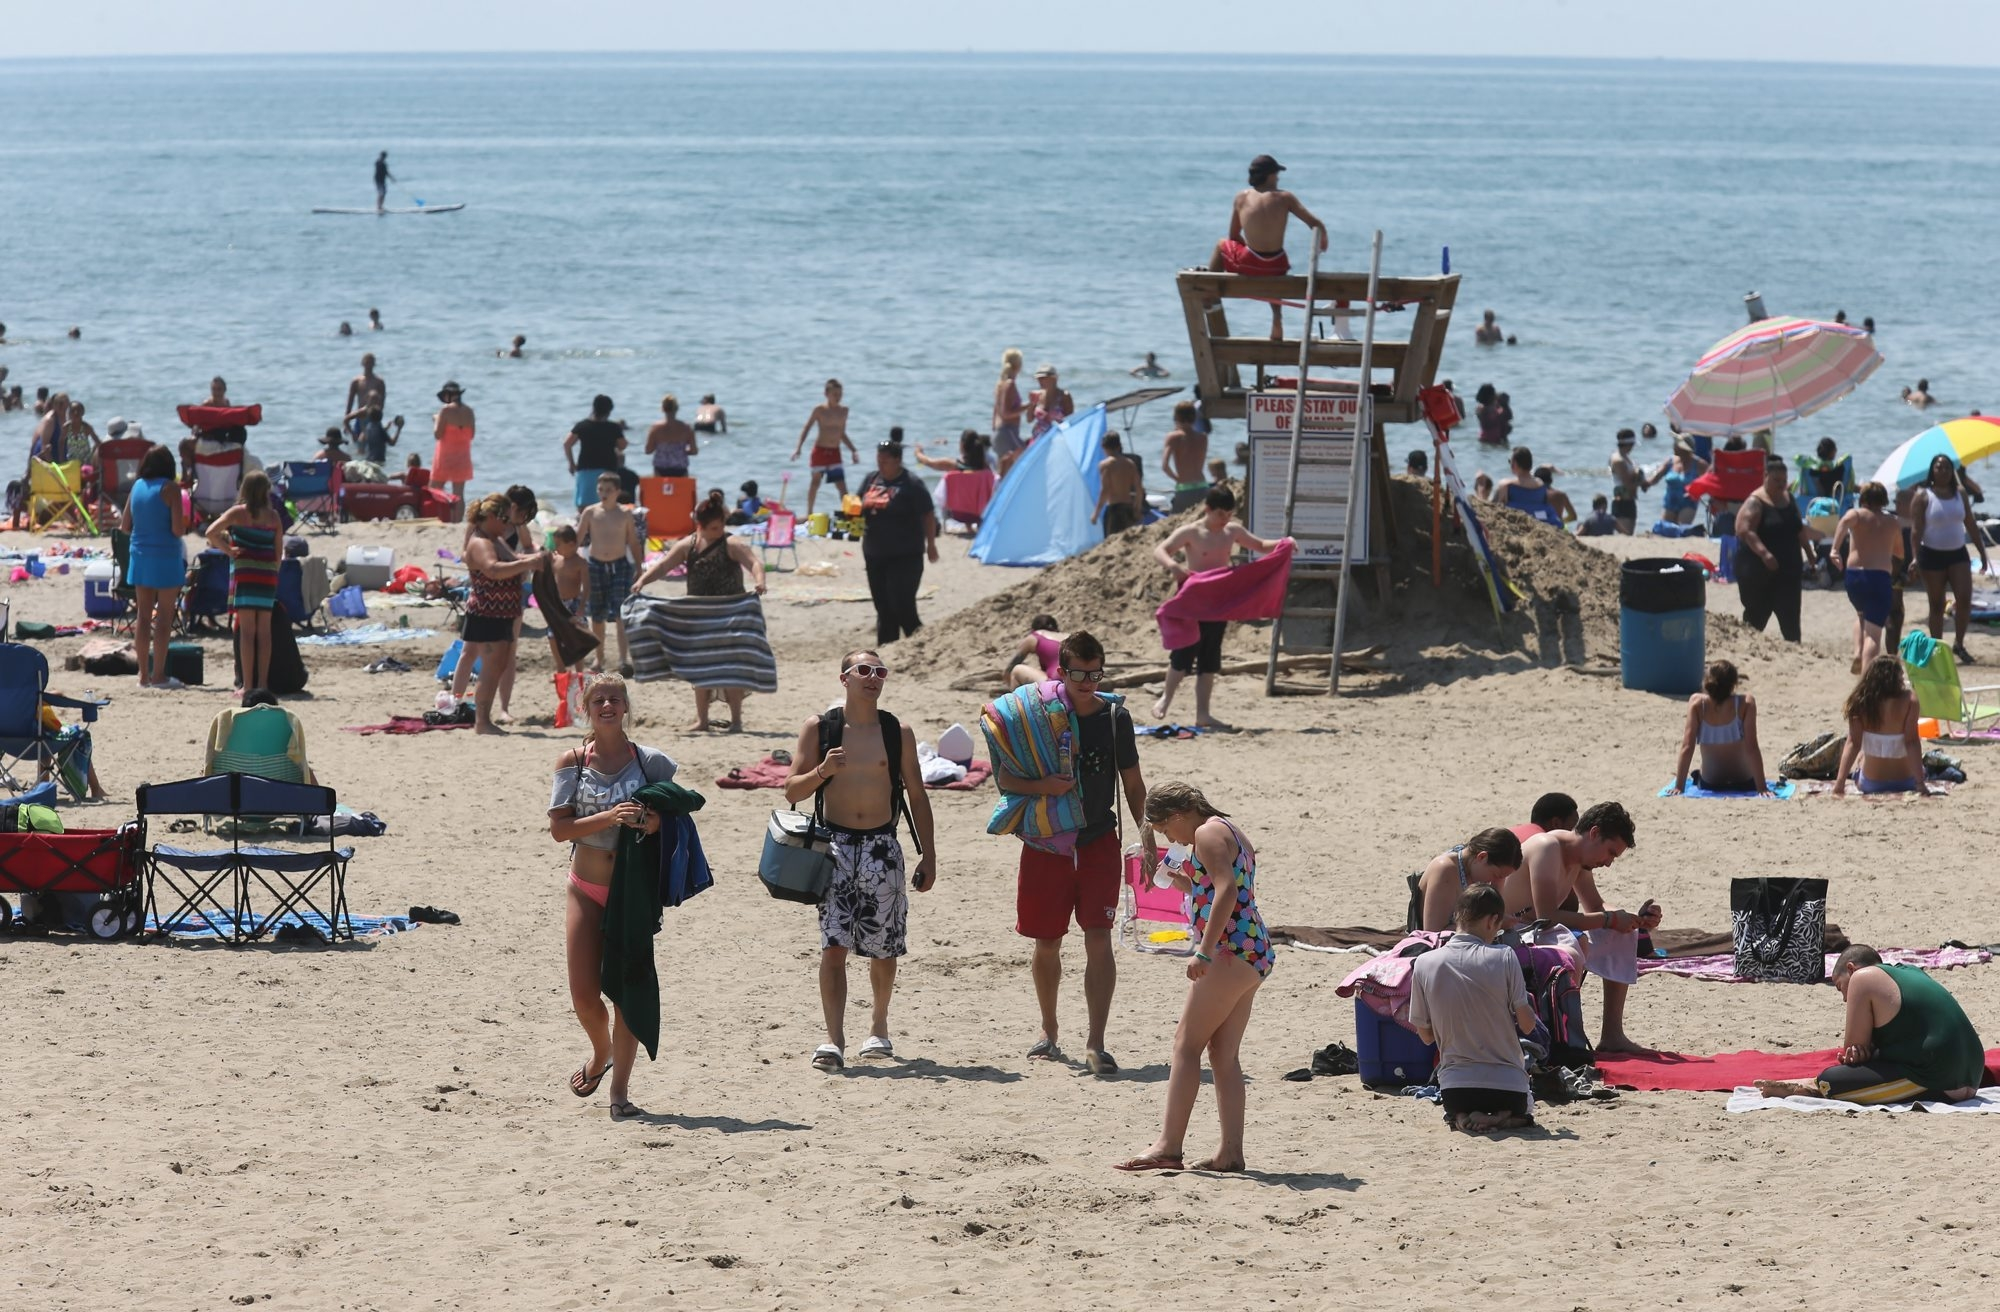 The hot weather drew a large crowd to Woodlawn Beach State Park in Hamburg on Tuesday. Traffic at the beach has been higher this summer than in recent years.